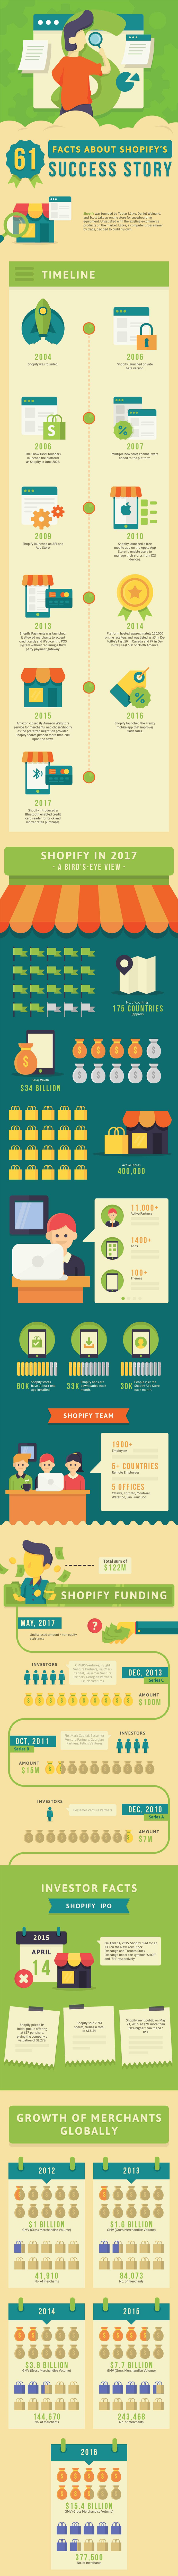 shopify, infographic, shopify infographic